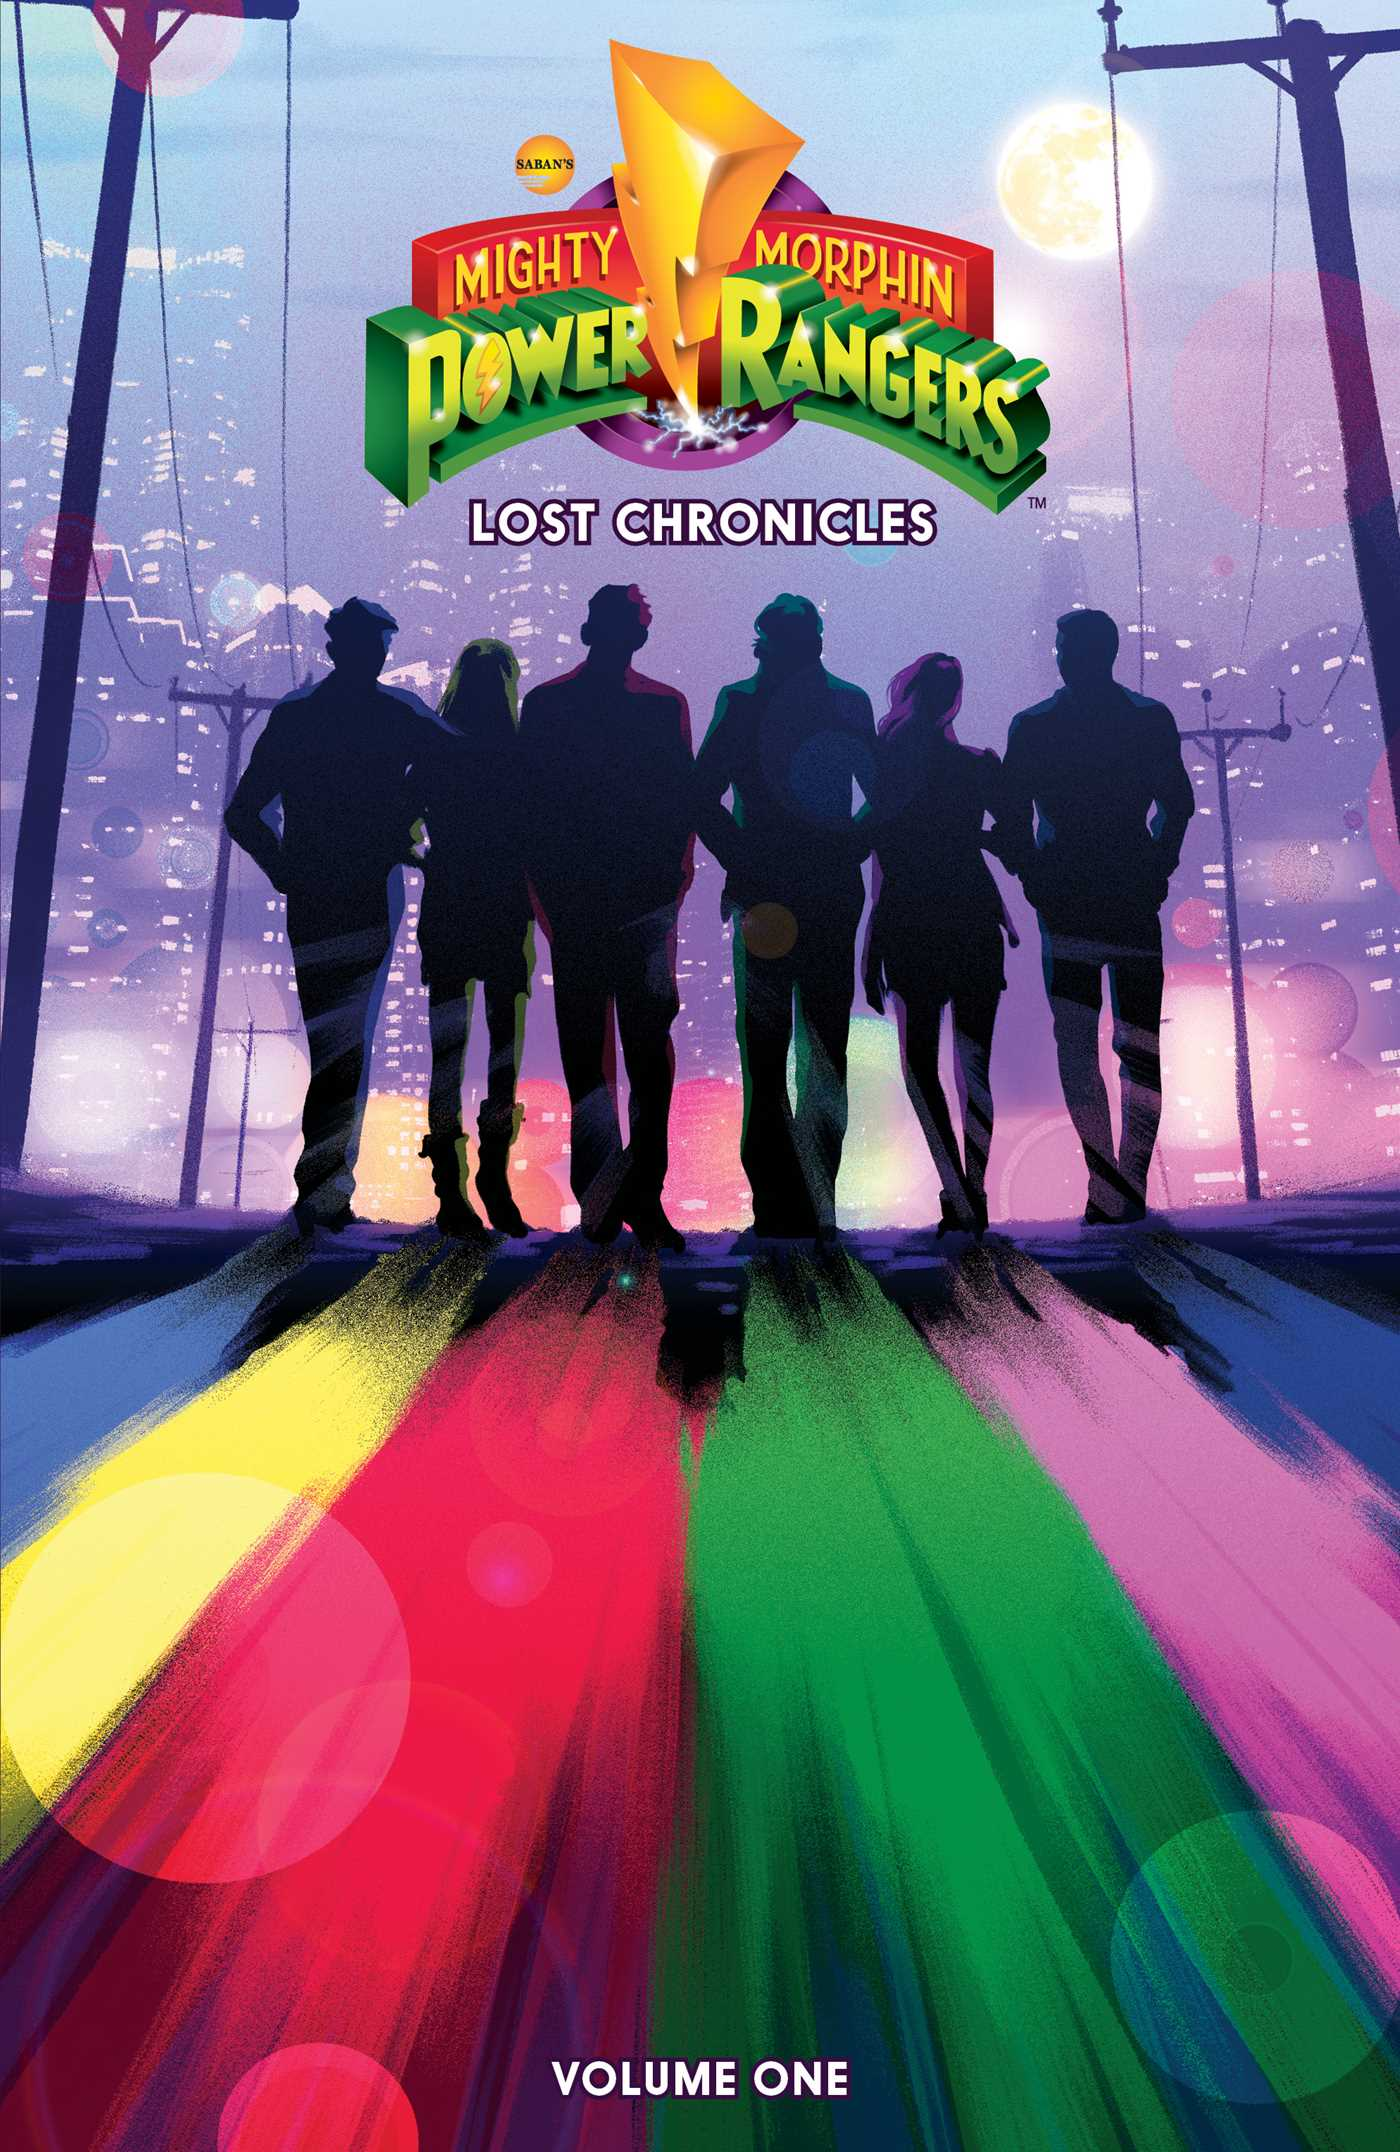 Mighty morphin power rangers lost chronicles 9781684152193 hr